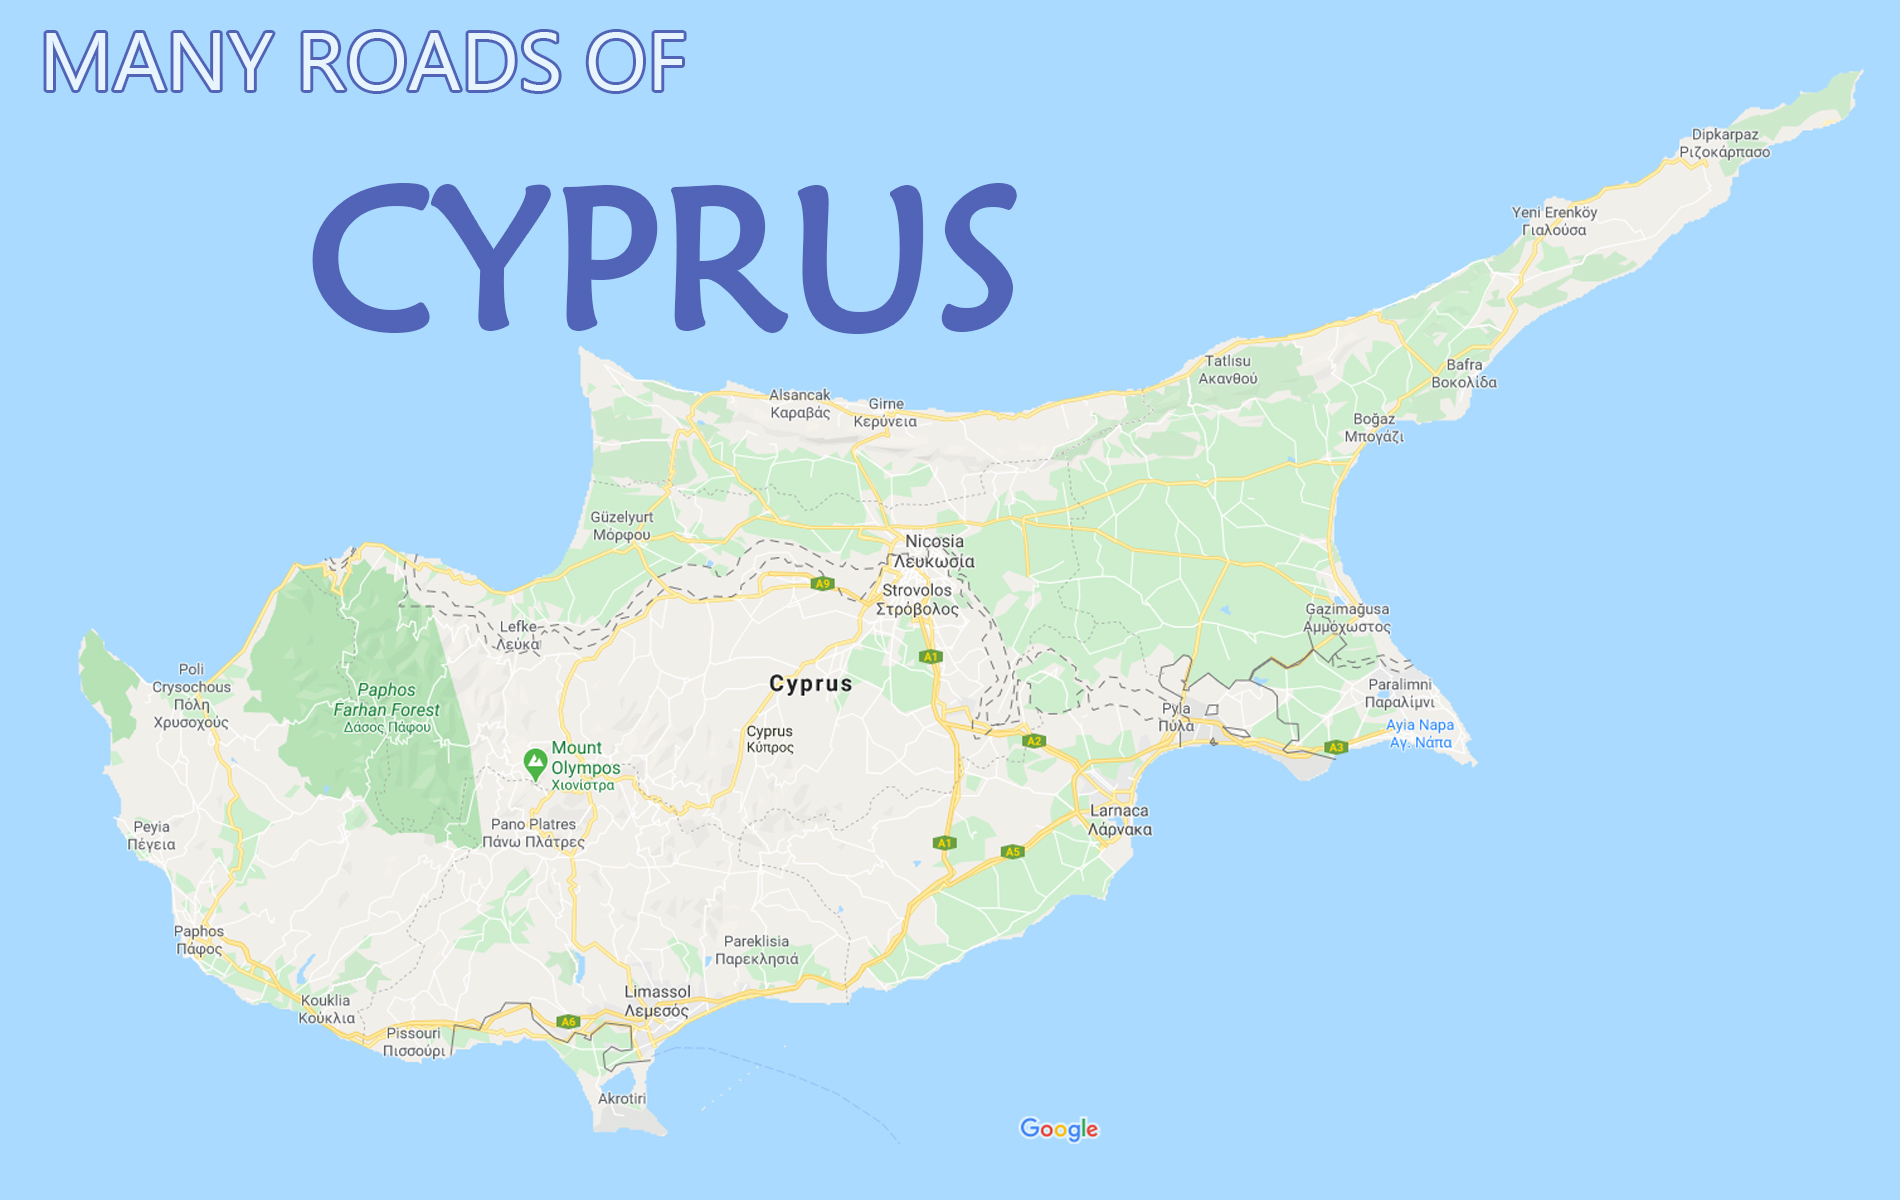 The many roads of Cyprus for Paphos taxi